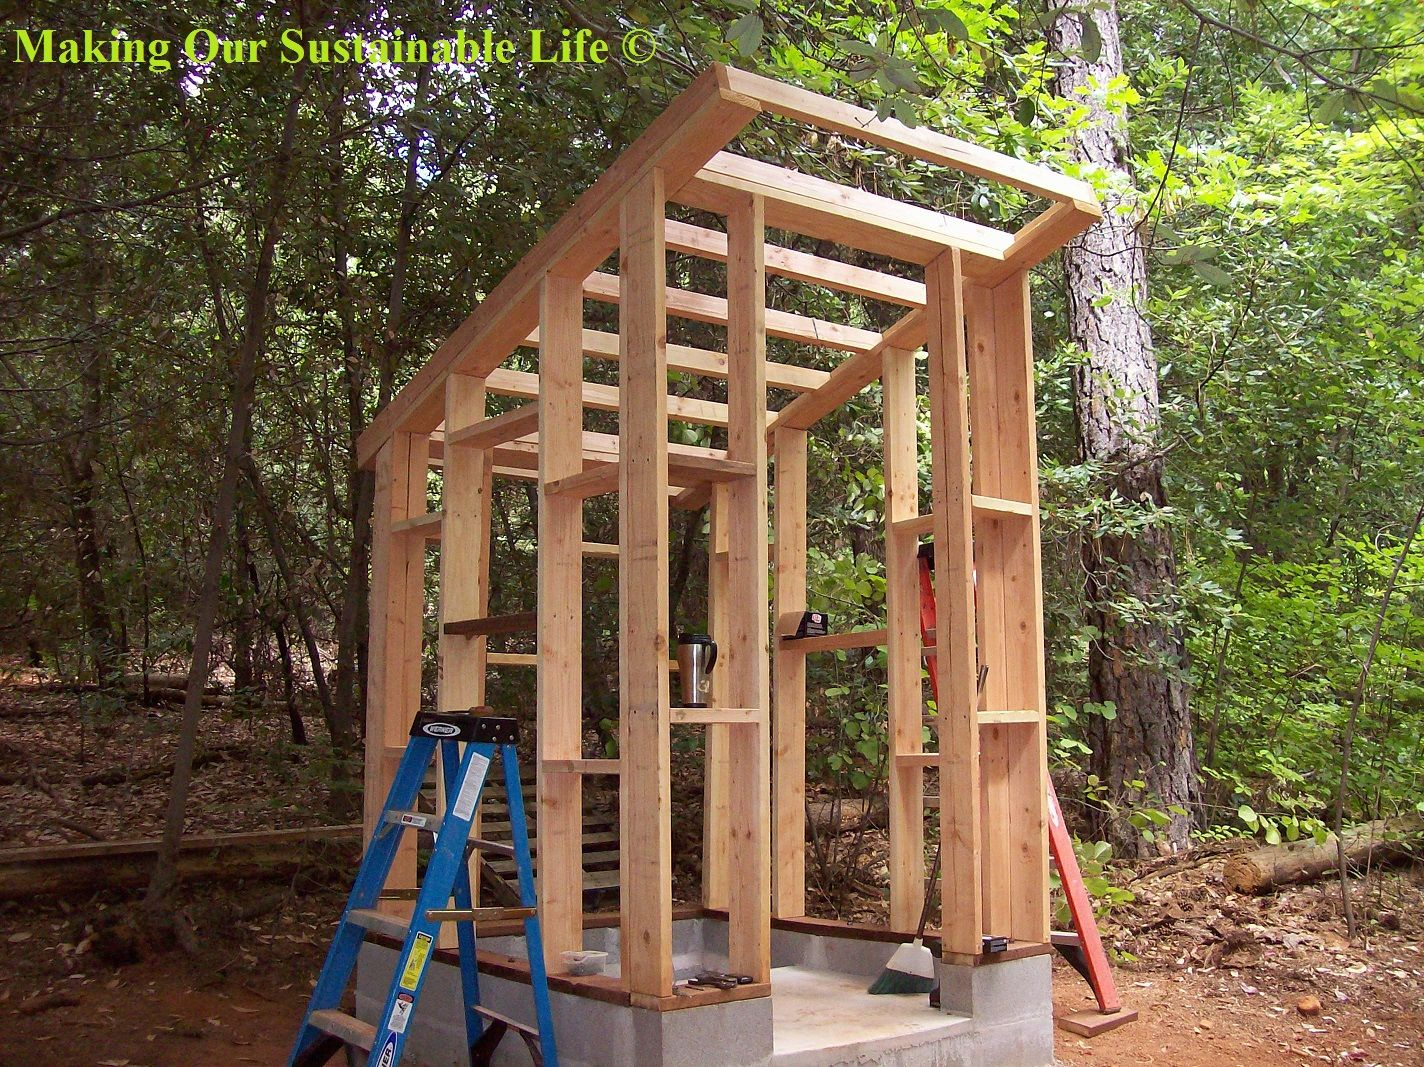 The Outhouse Making Our Sustainable Life Outhouse